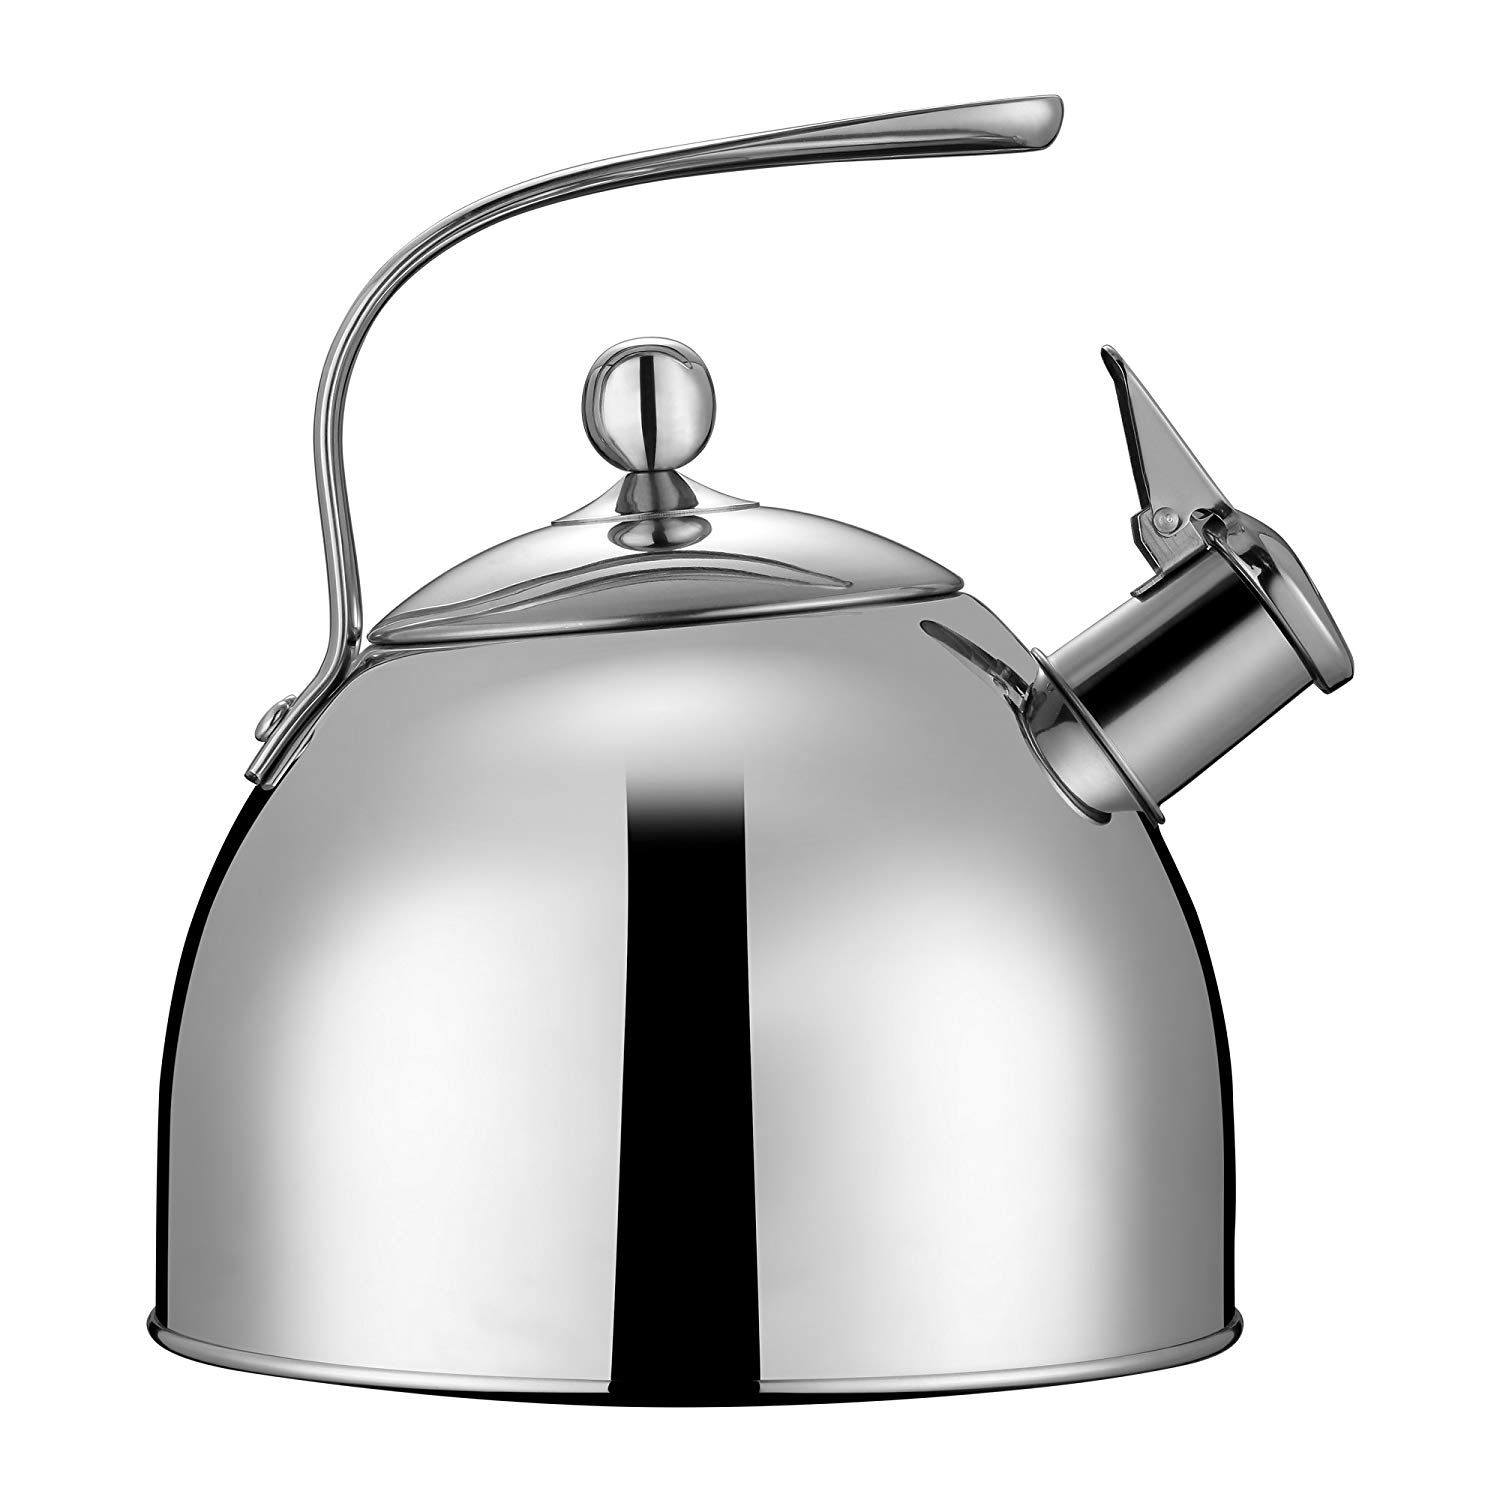 Tea Pot-Classic Cookware 304 Stainless Steel Whistling Tea Kettle, 2.6 Quart